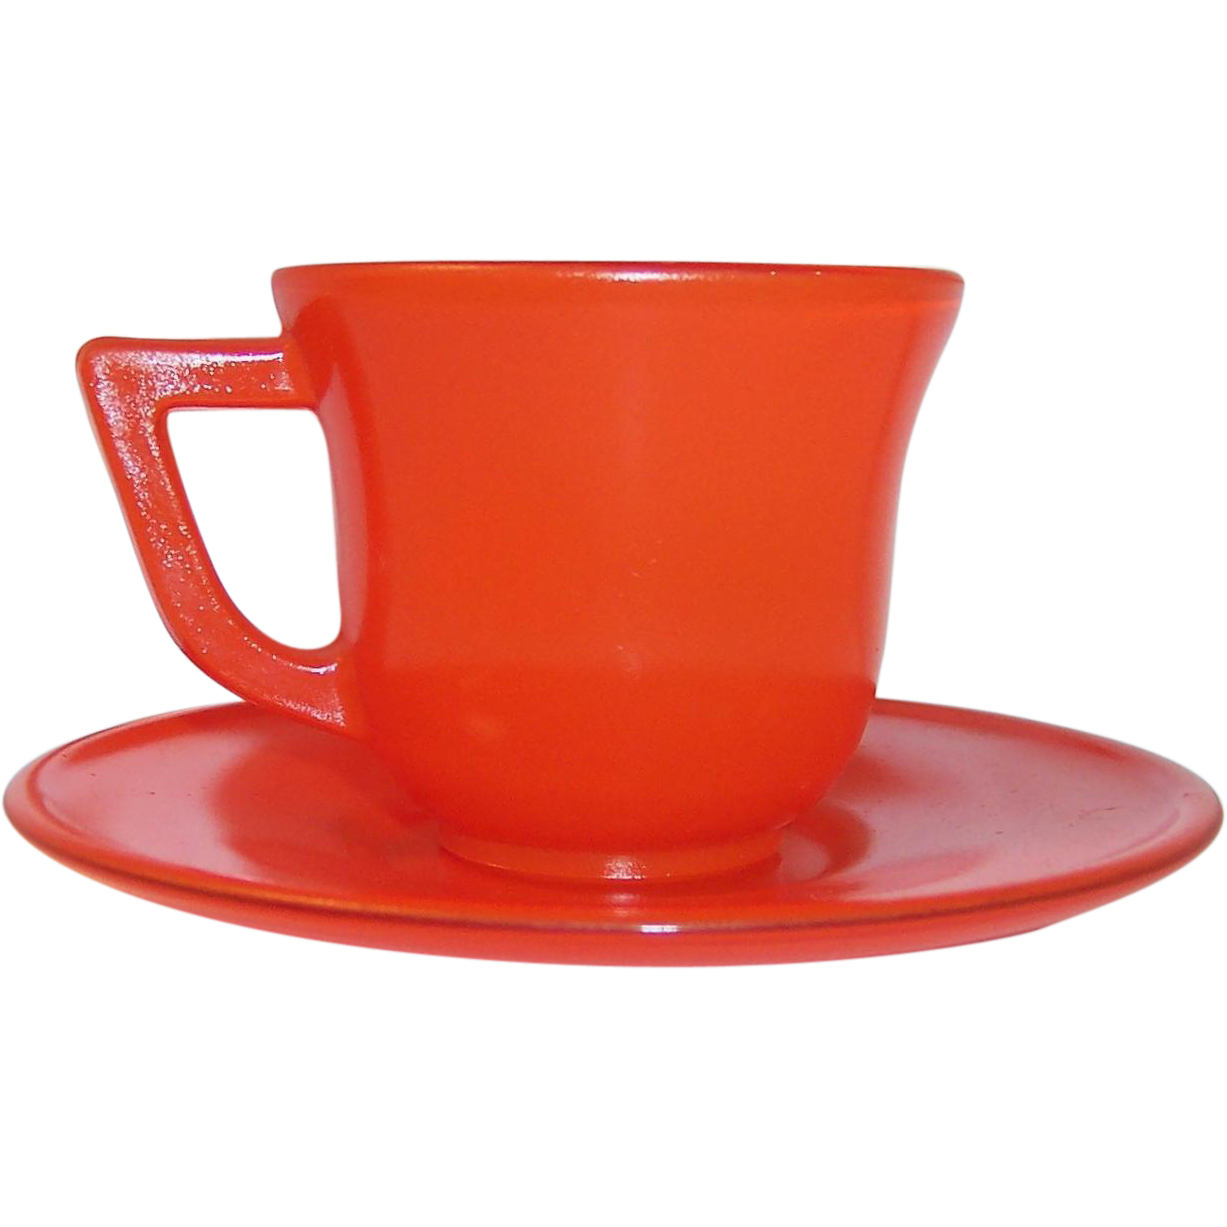 1950's Hazel Atlas Fired on Orange Demitasse Set